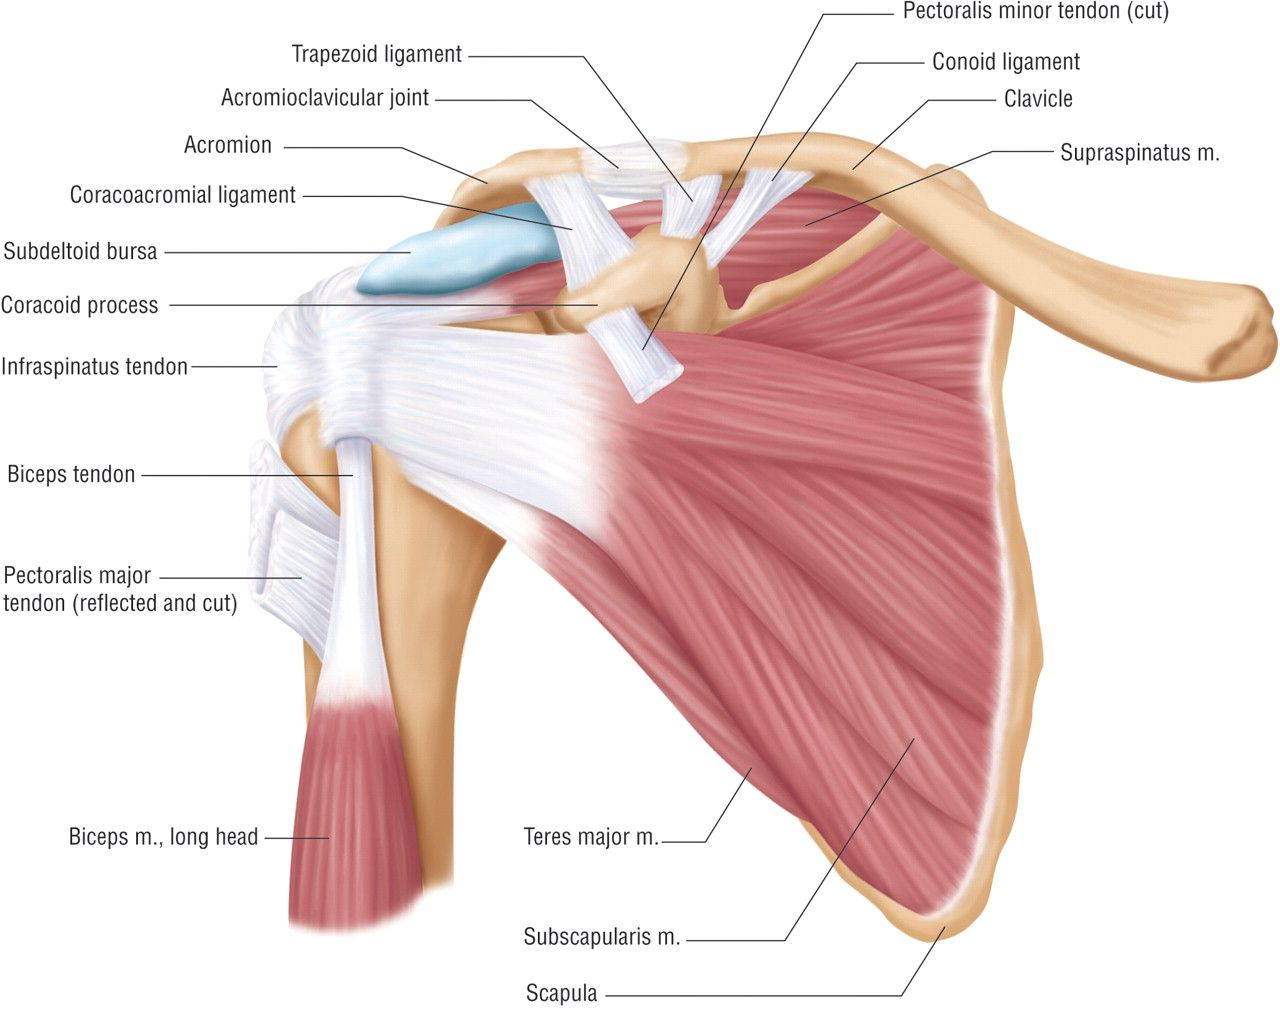 basic shoulder anatomy patients crossing oceans - health, medicine, Cephalic vein